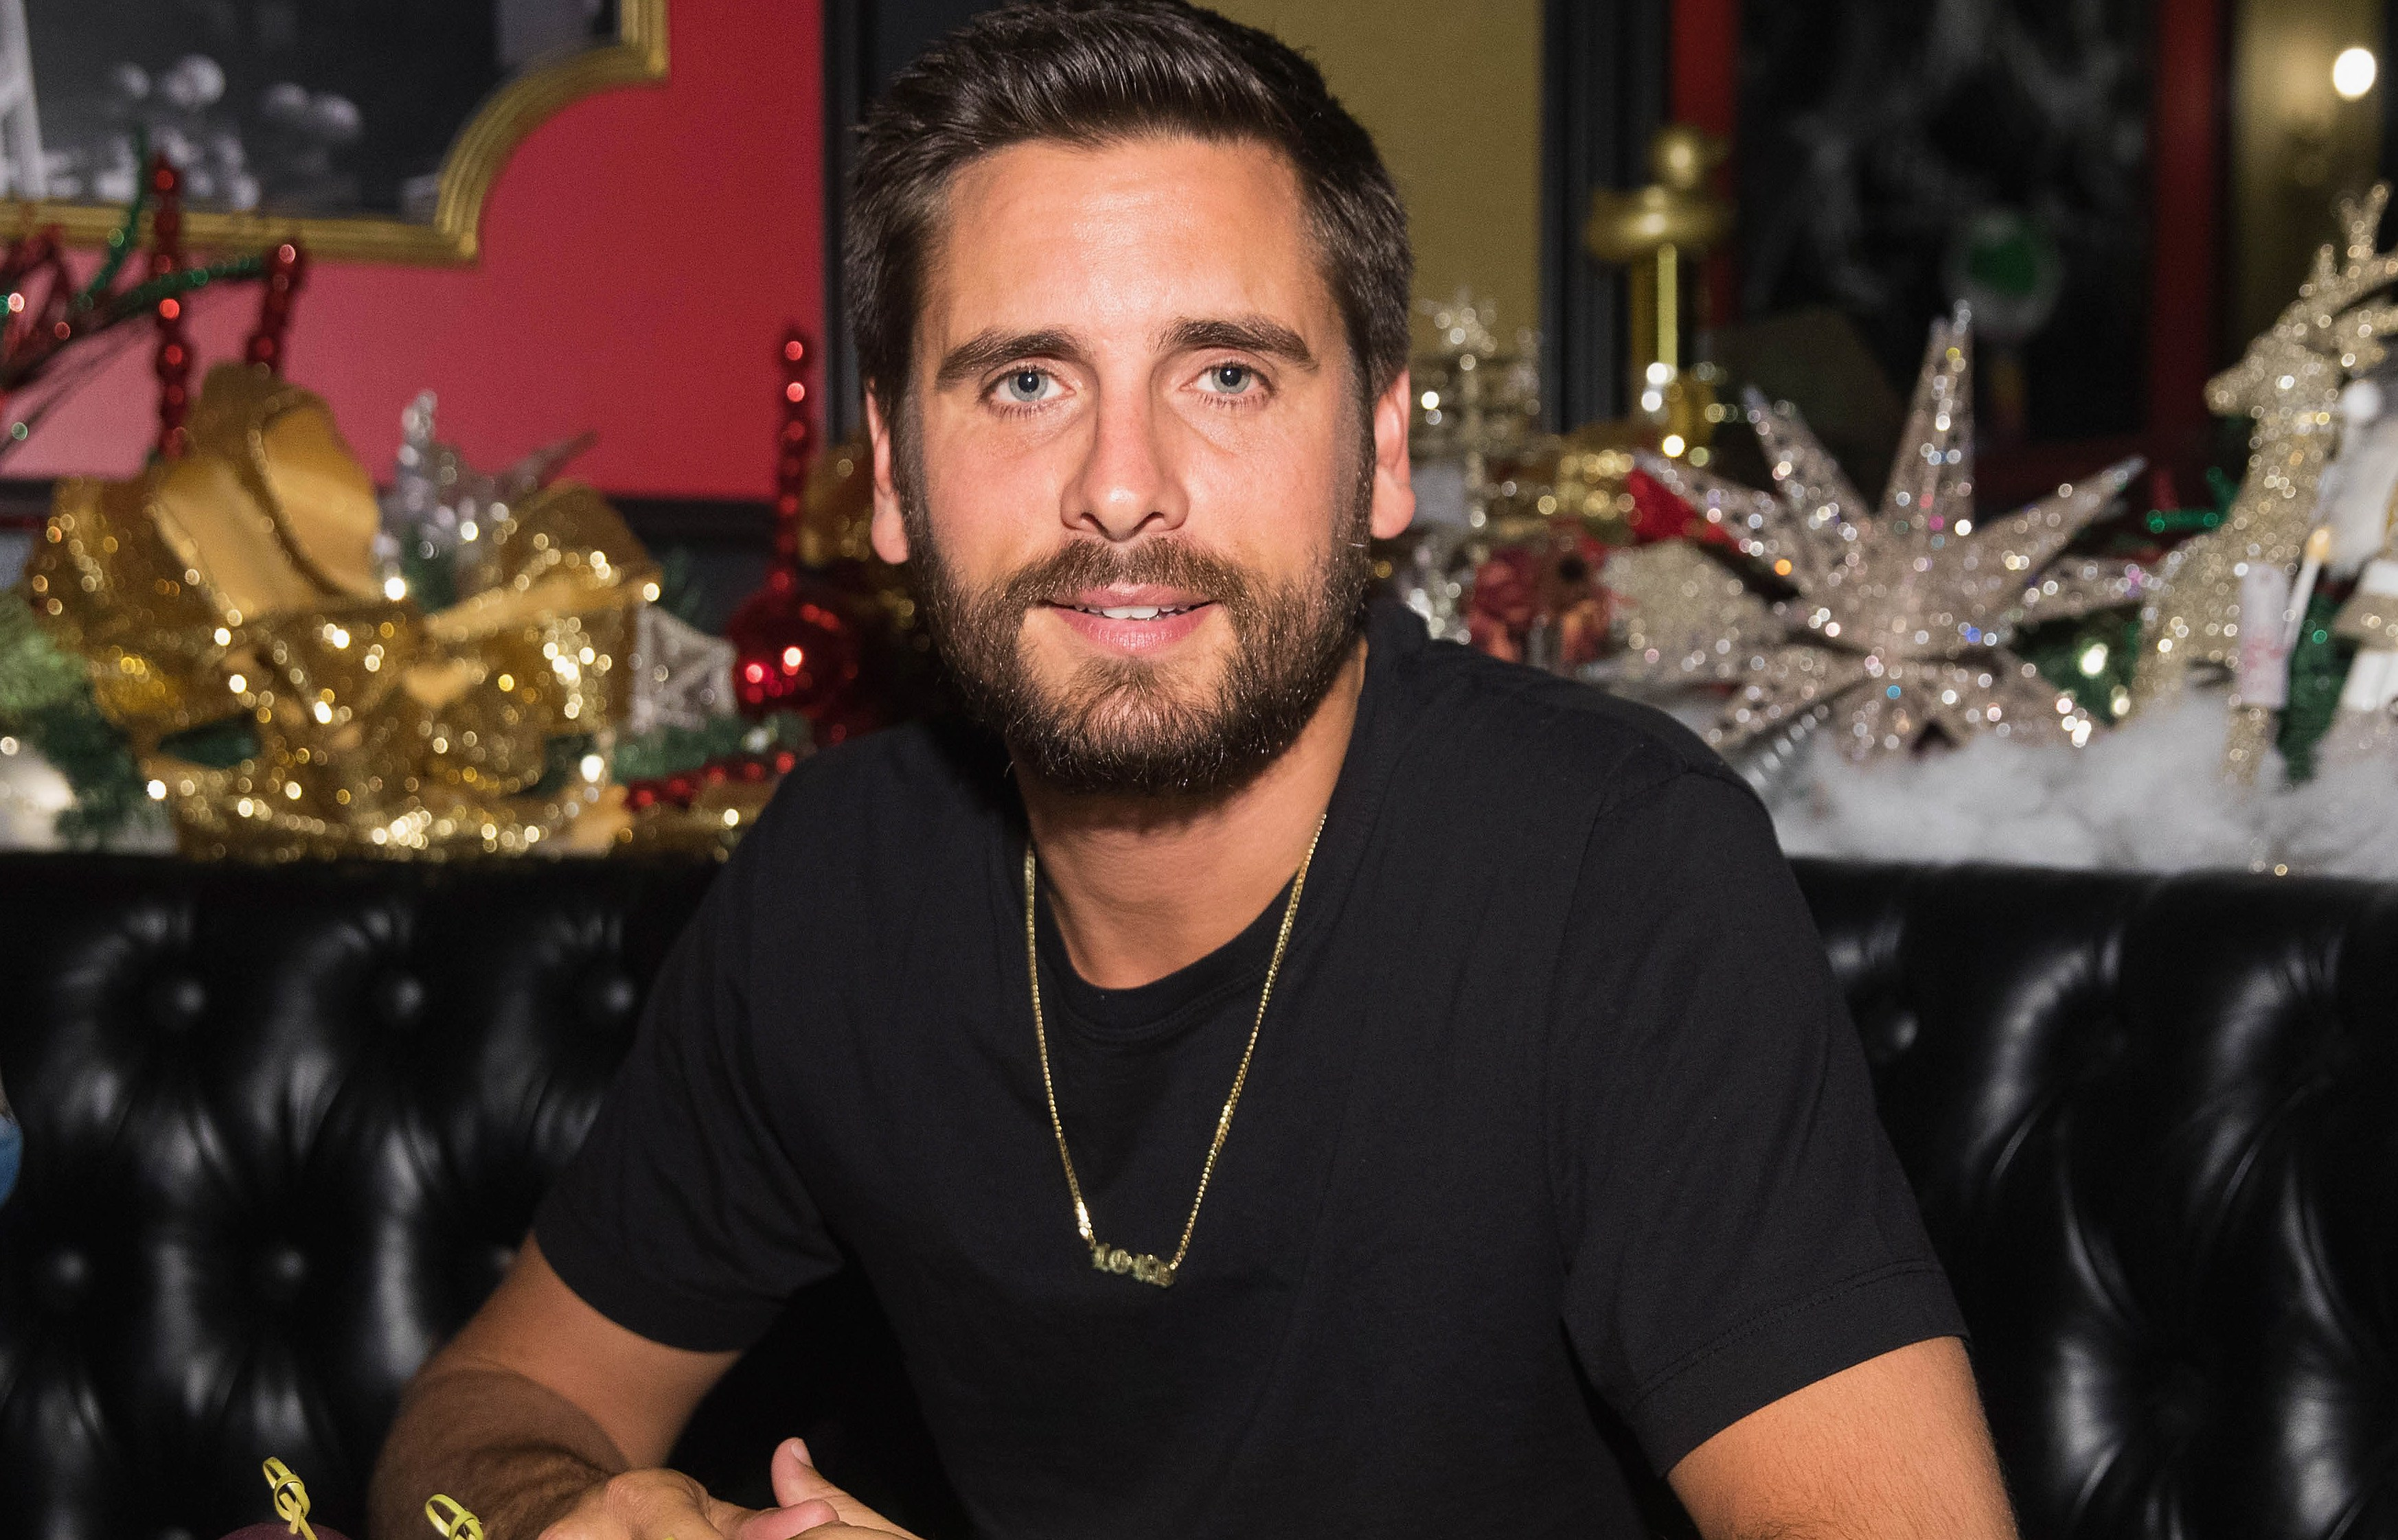 Scott Disick Age, Salary, and Net Worth